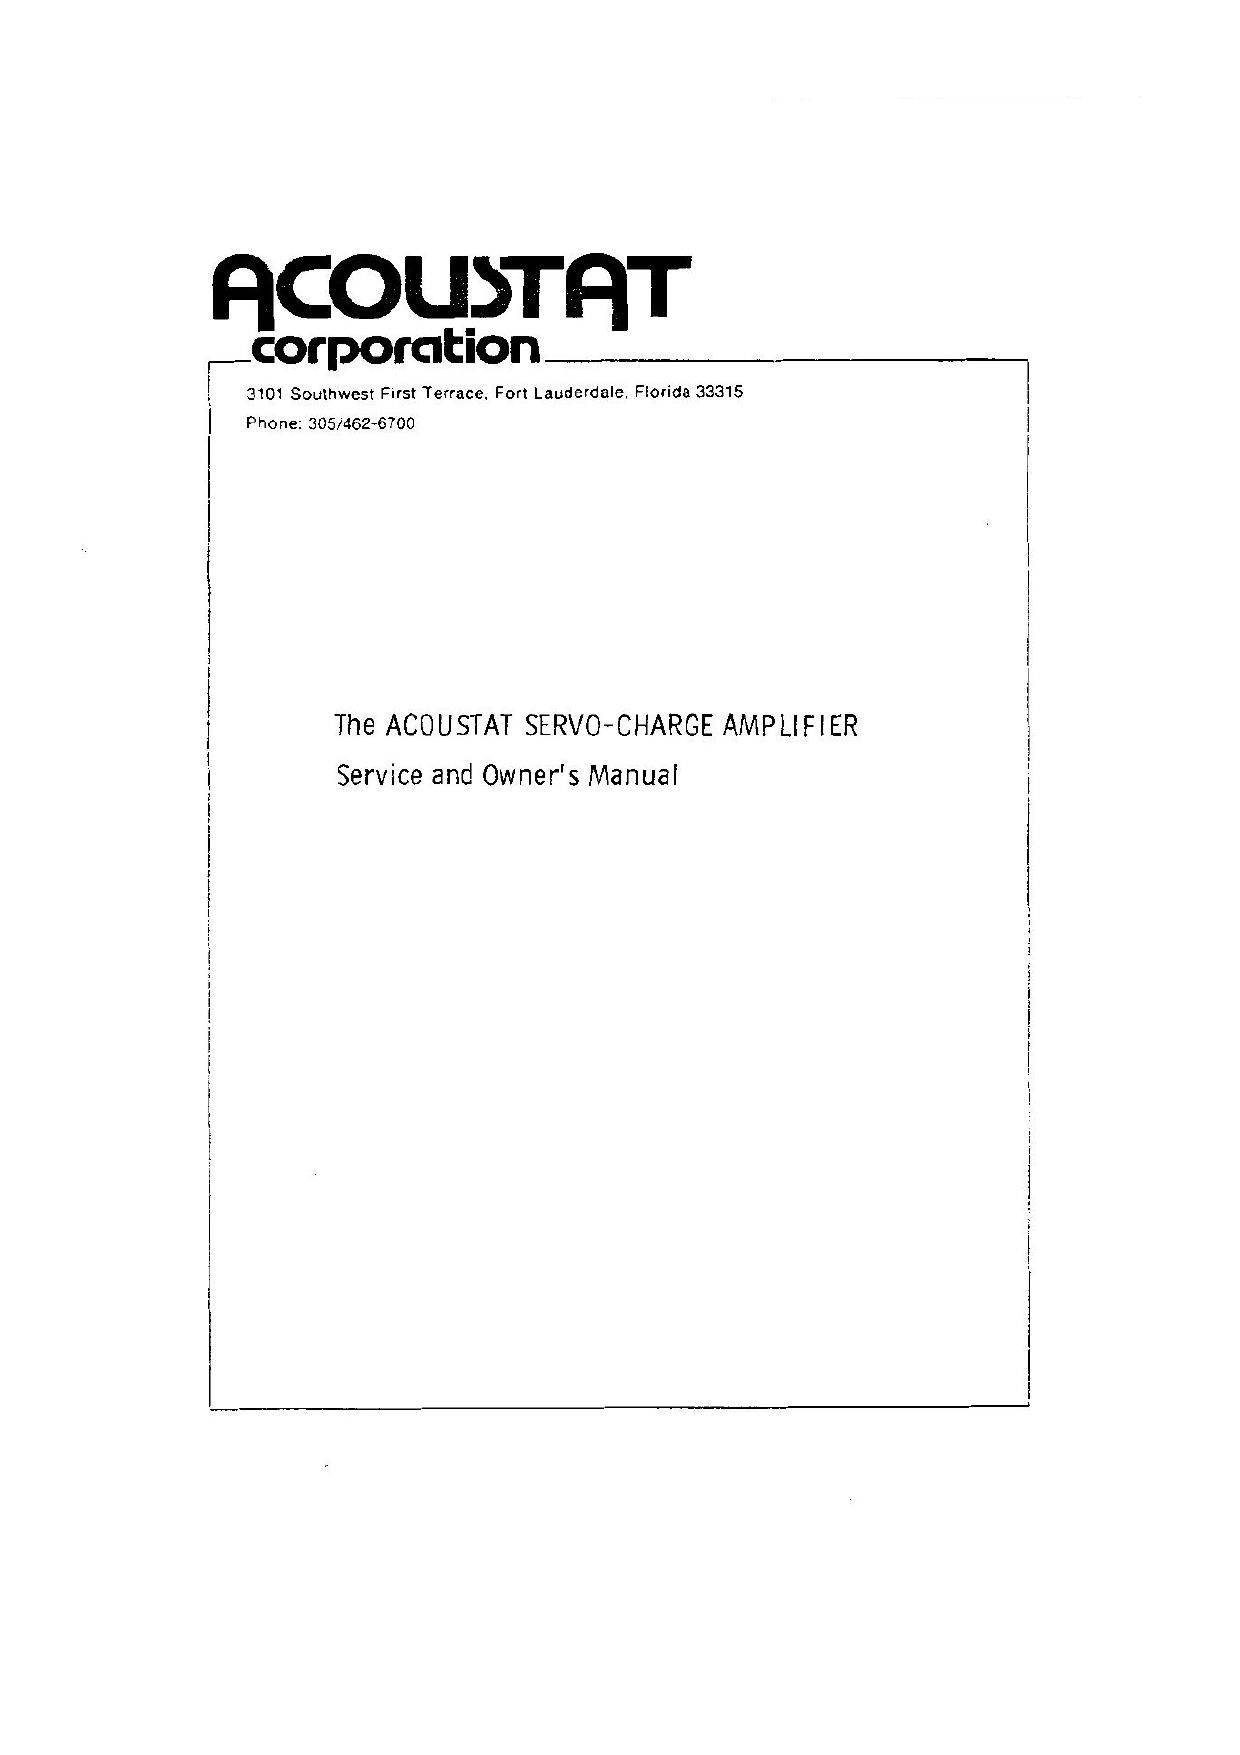 Acoustat Amplifier